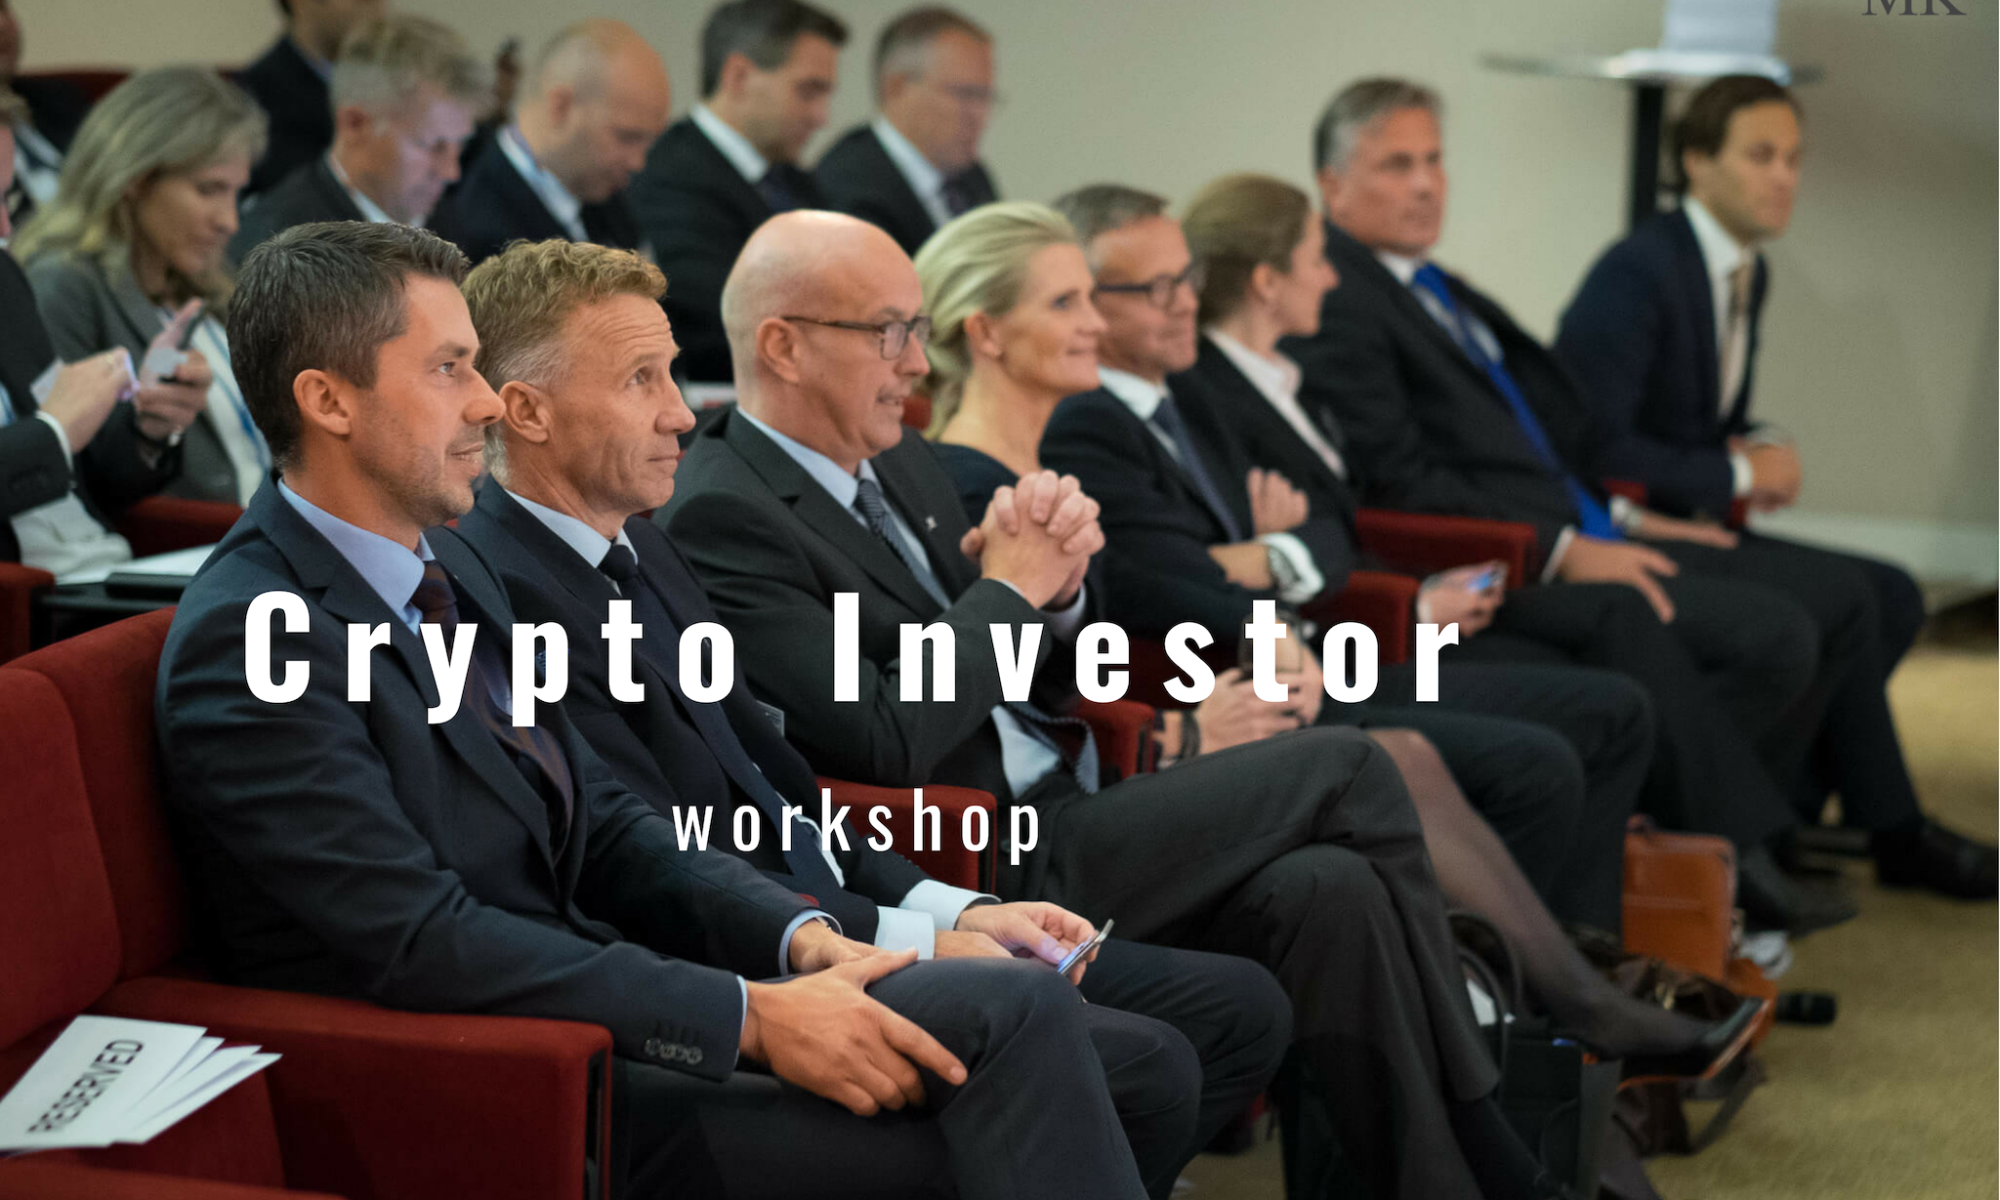 Crypto Investor Workshop